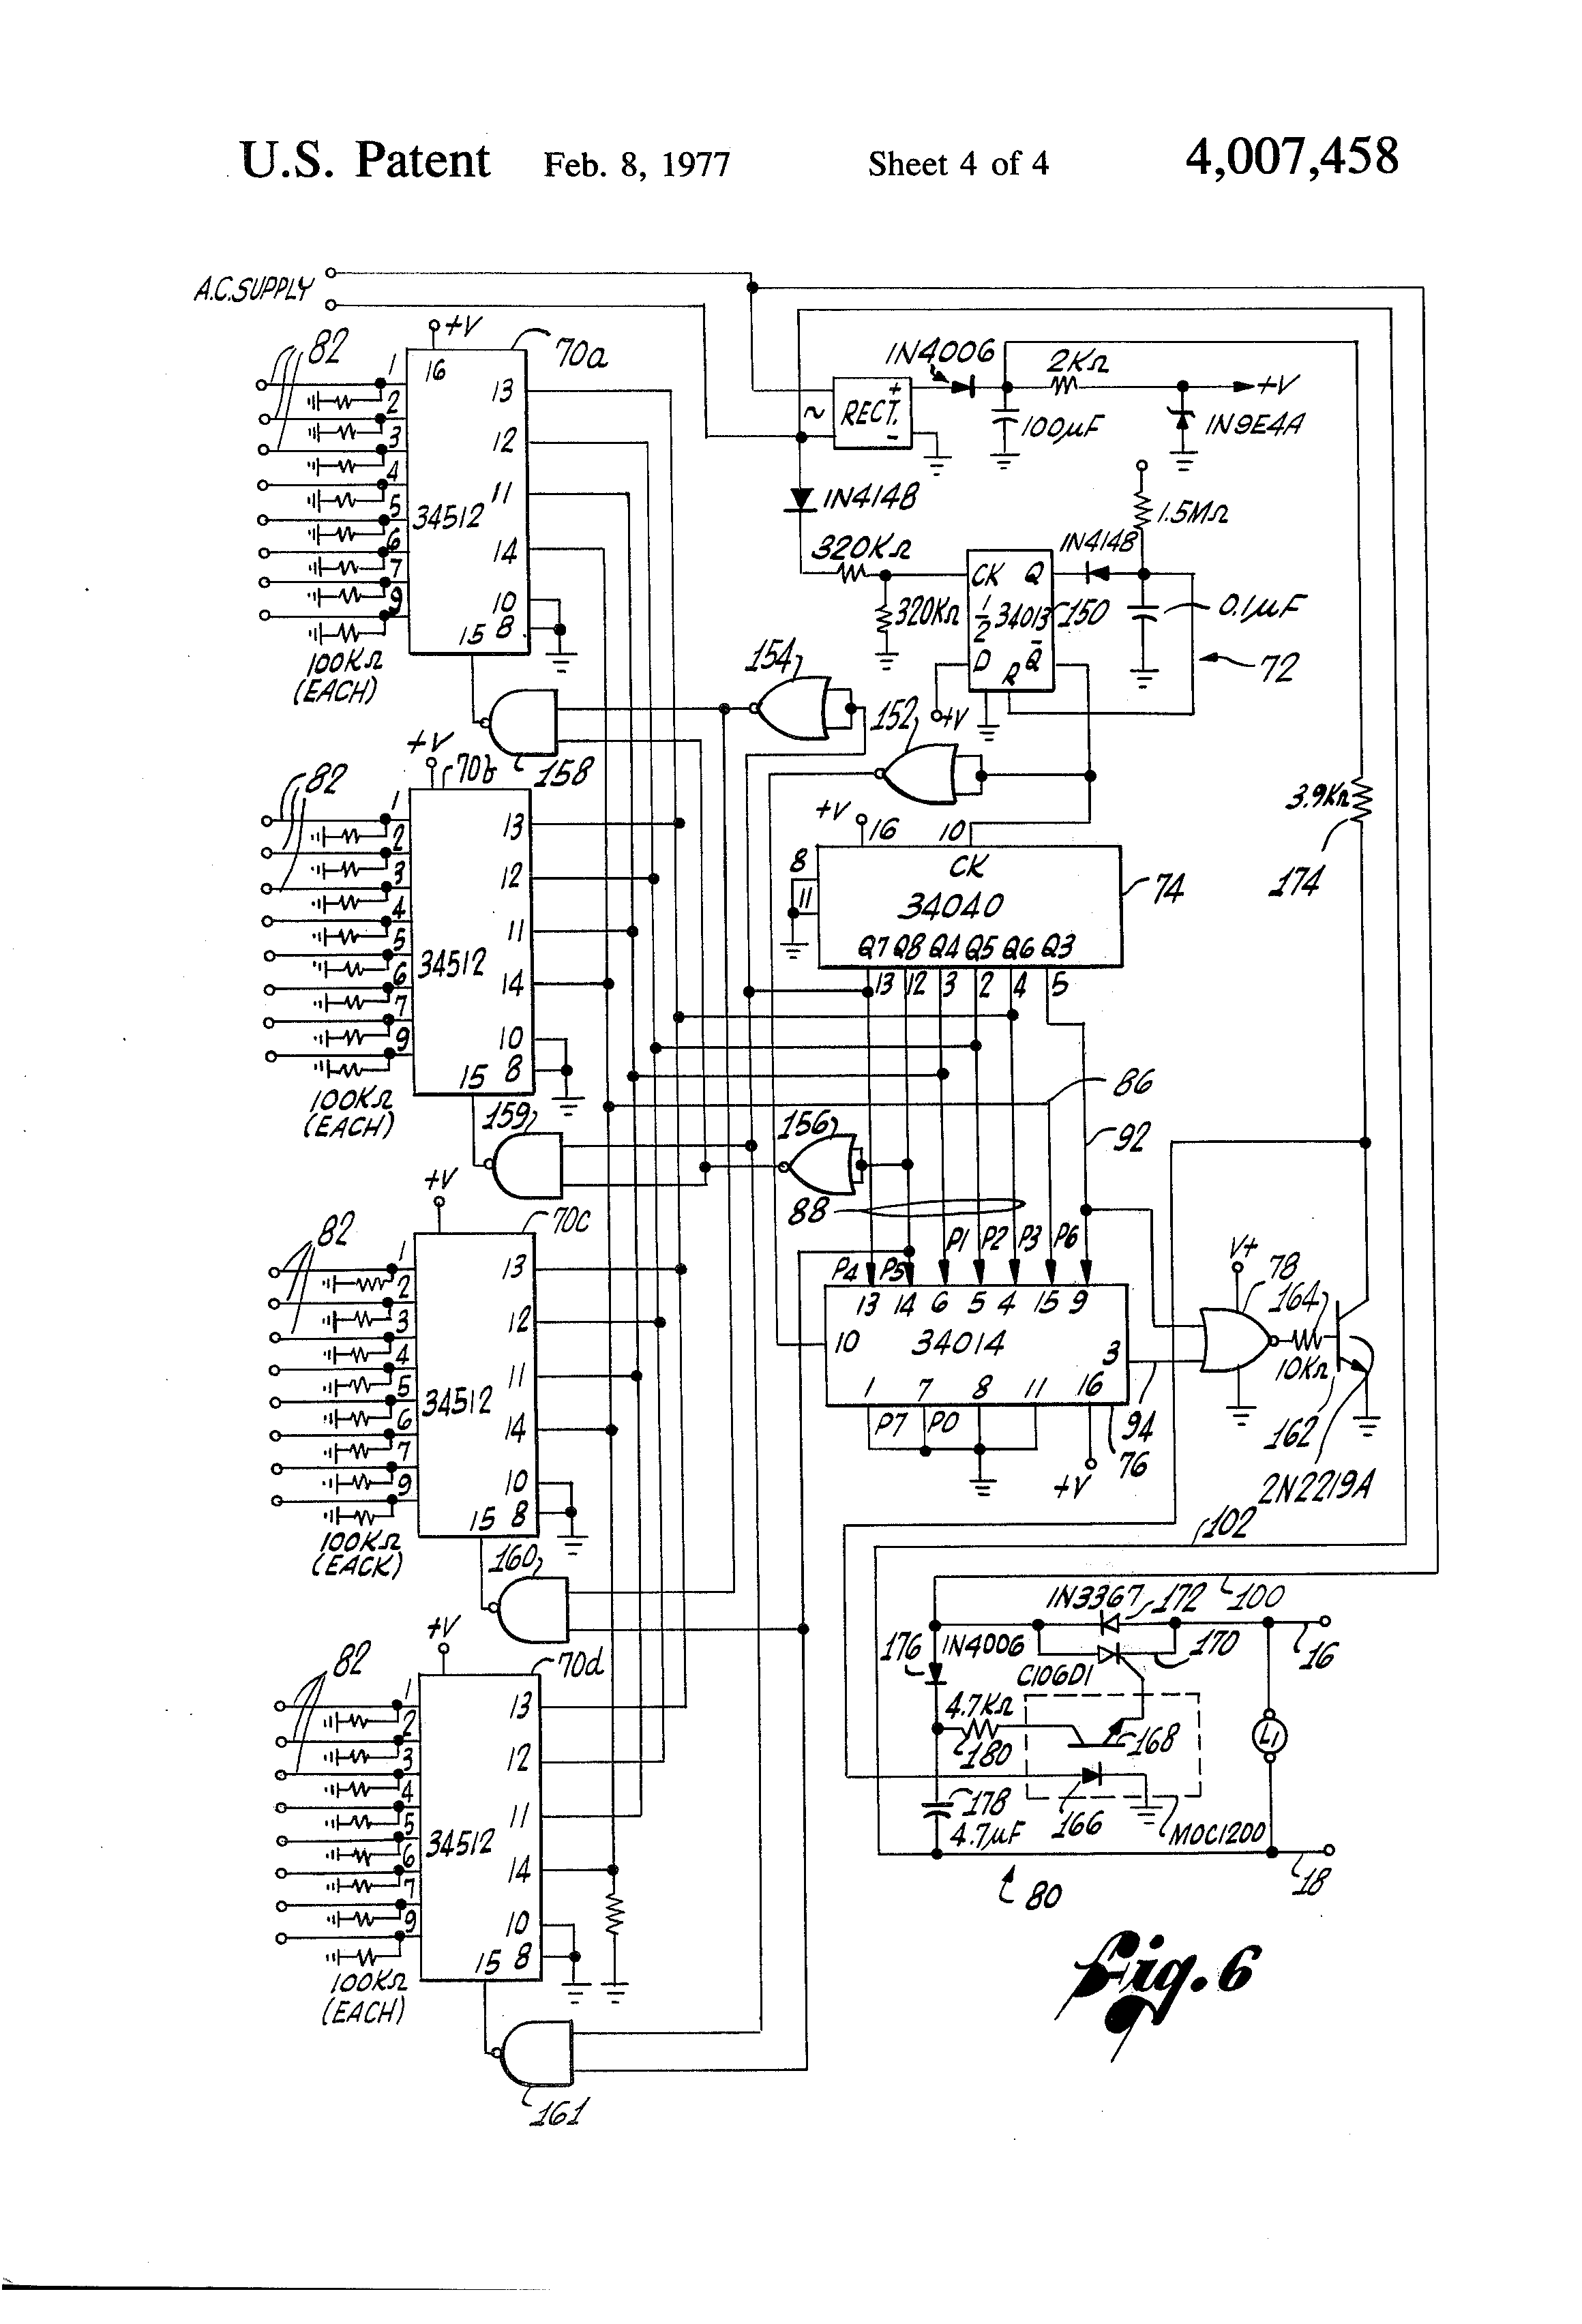 US4007458 4 toro irrigation wiring diagram wiring diagram and schematic design toro tmc-212 wiring diagram at virtualis.co